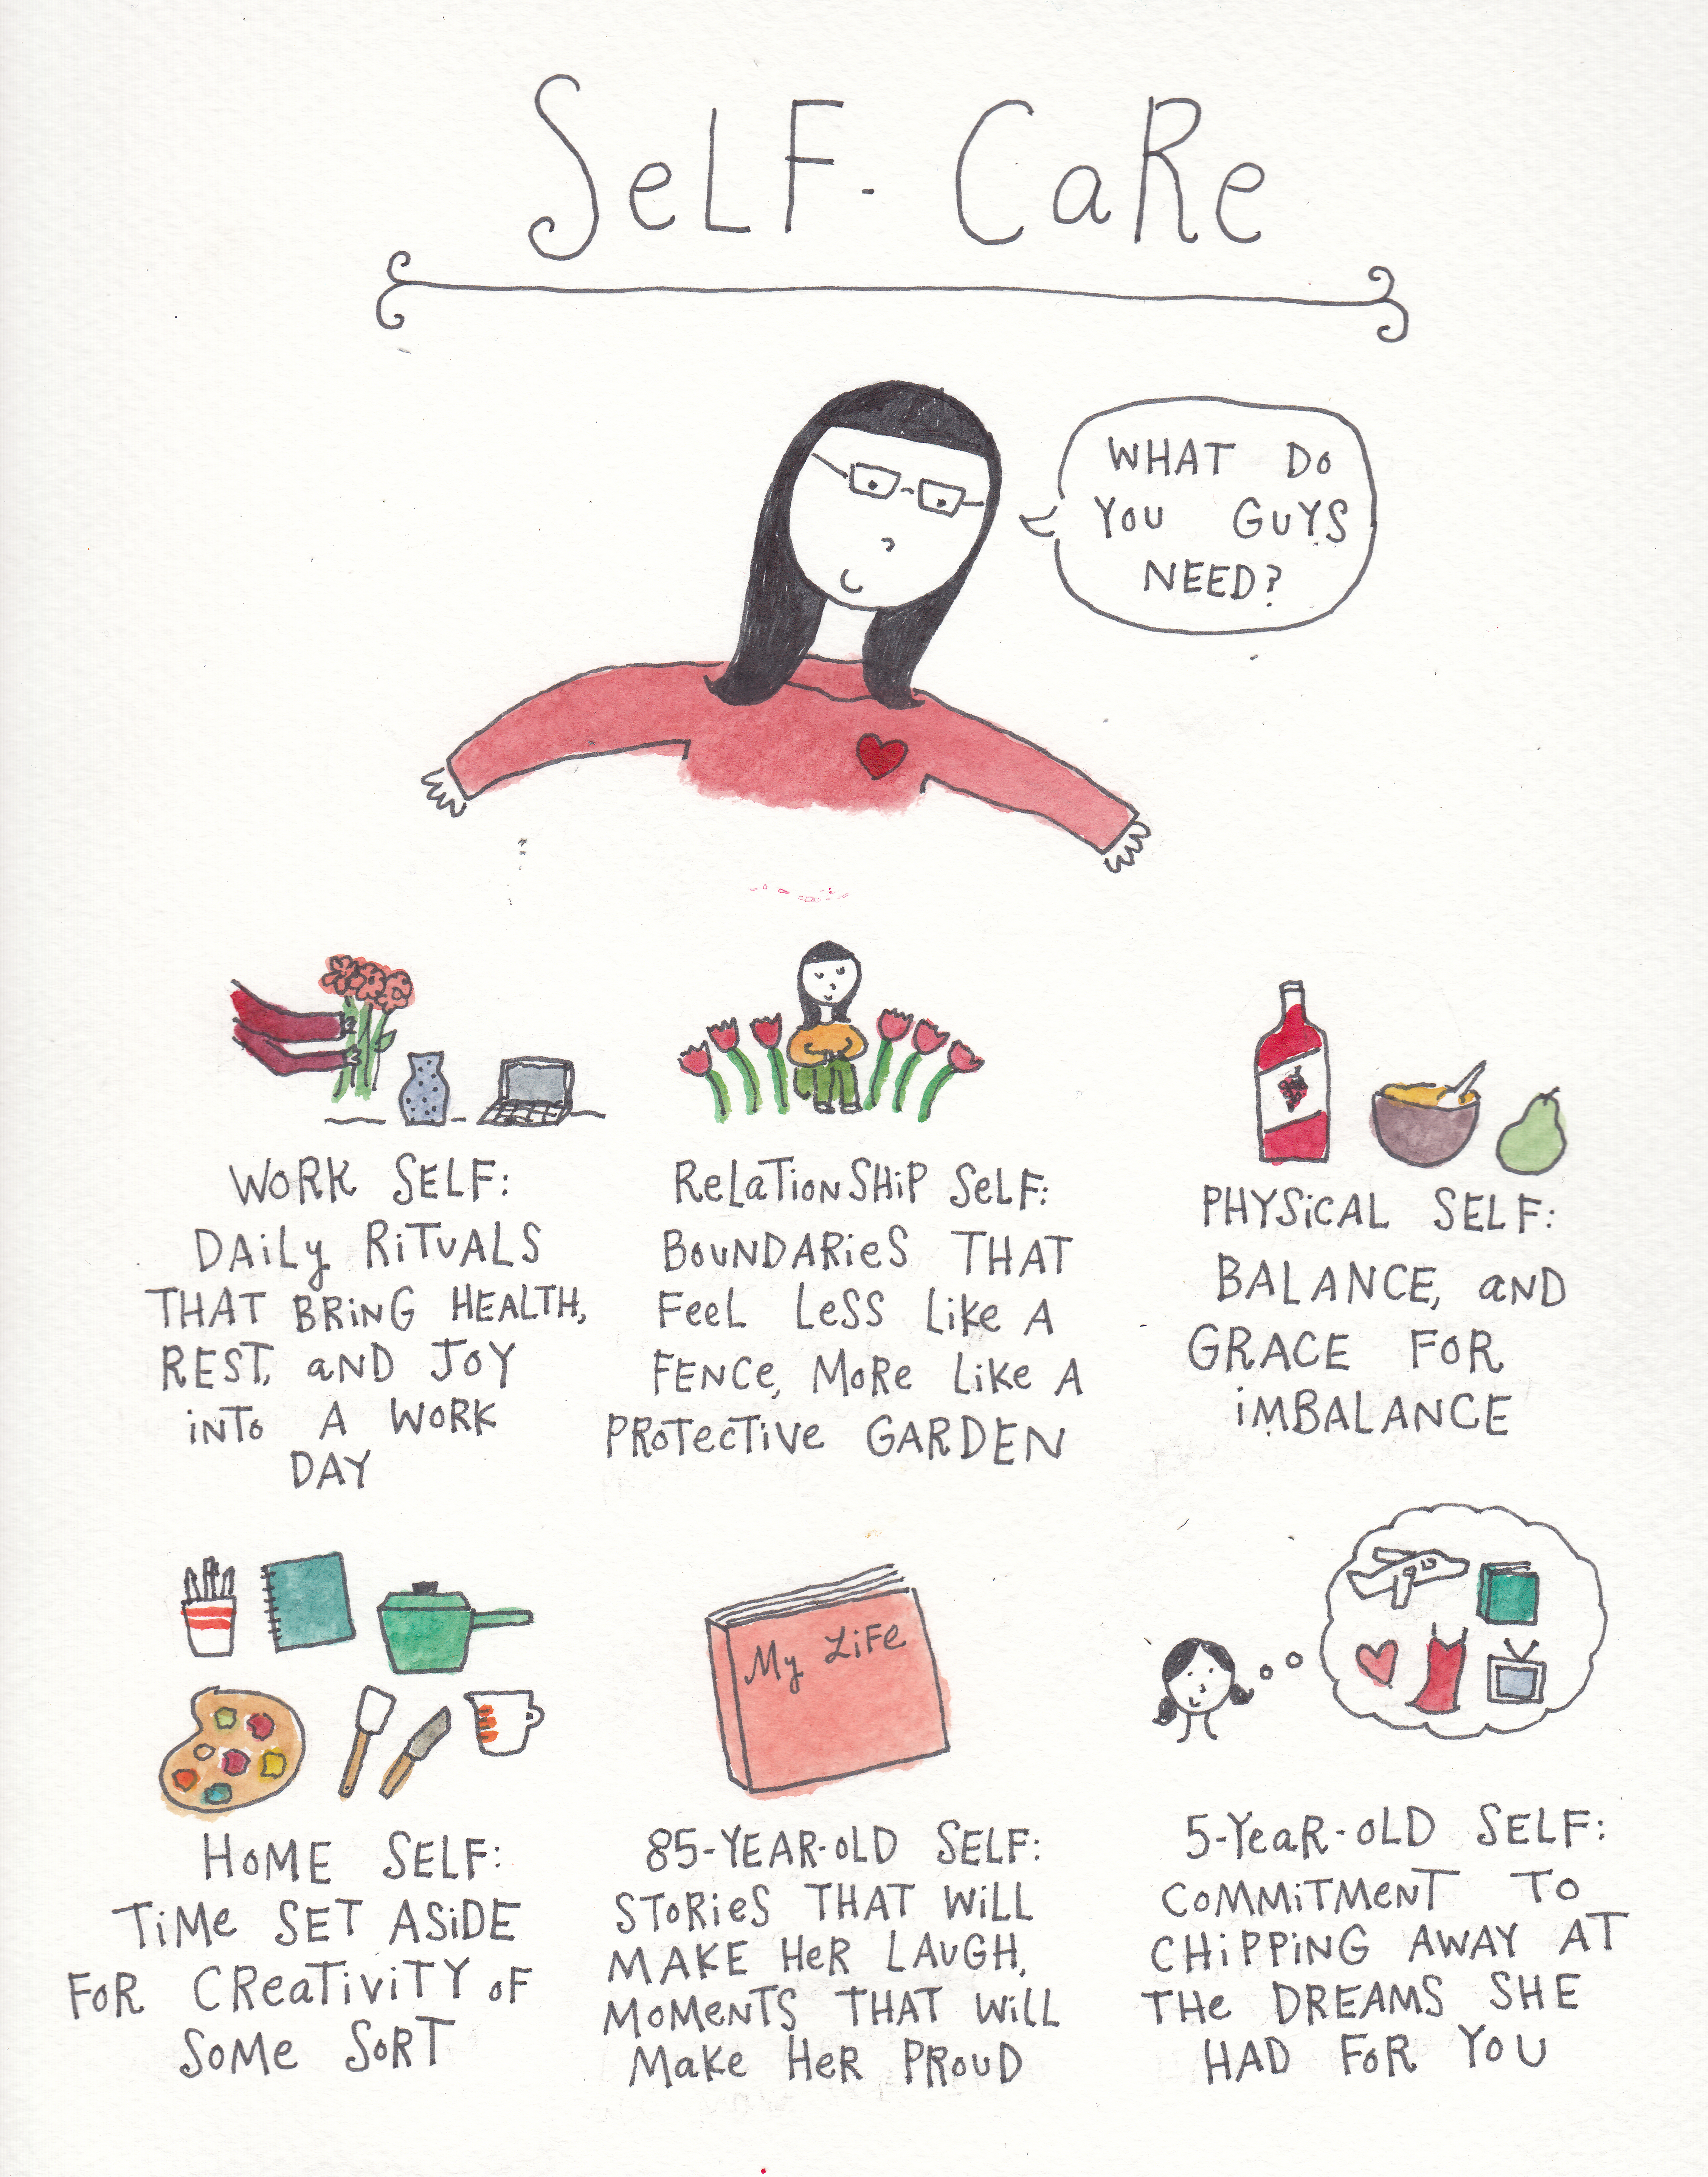 Self care illustration by Mari Andrew